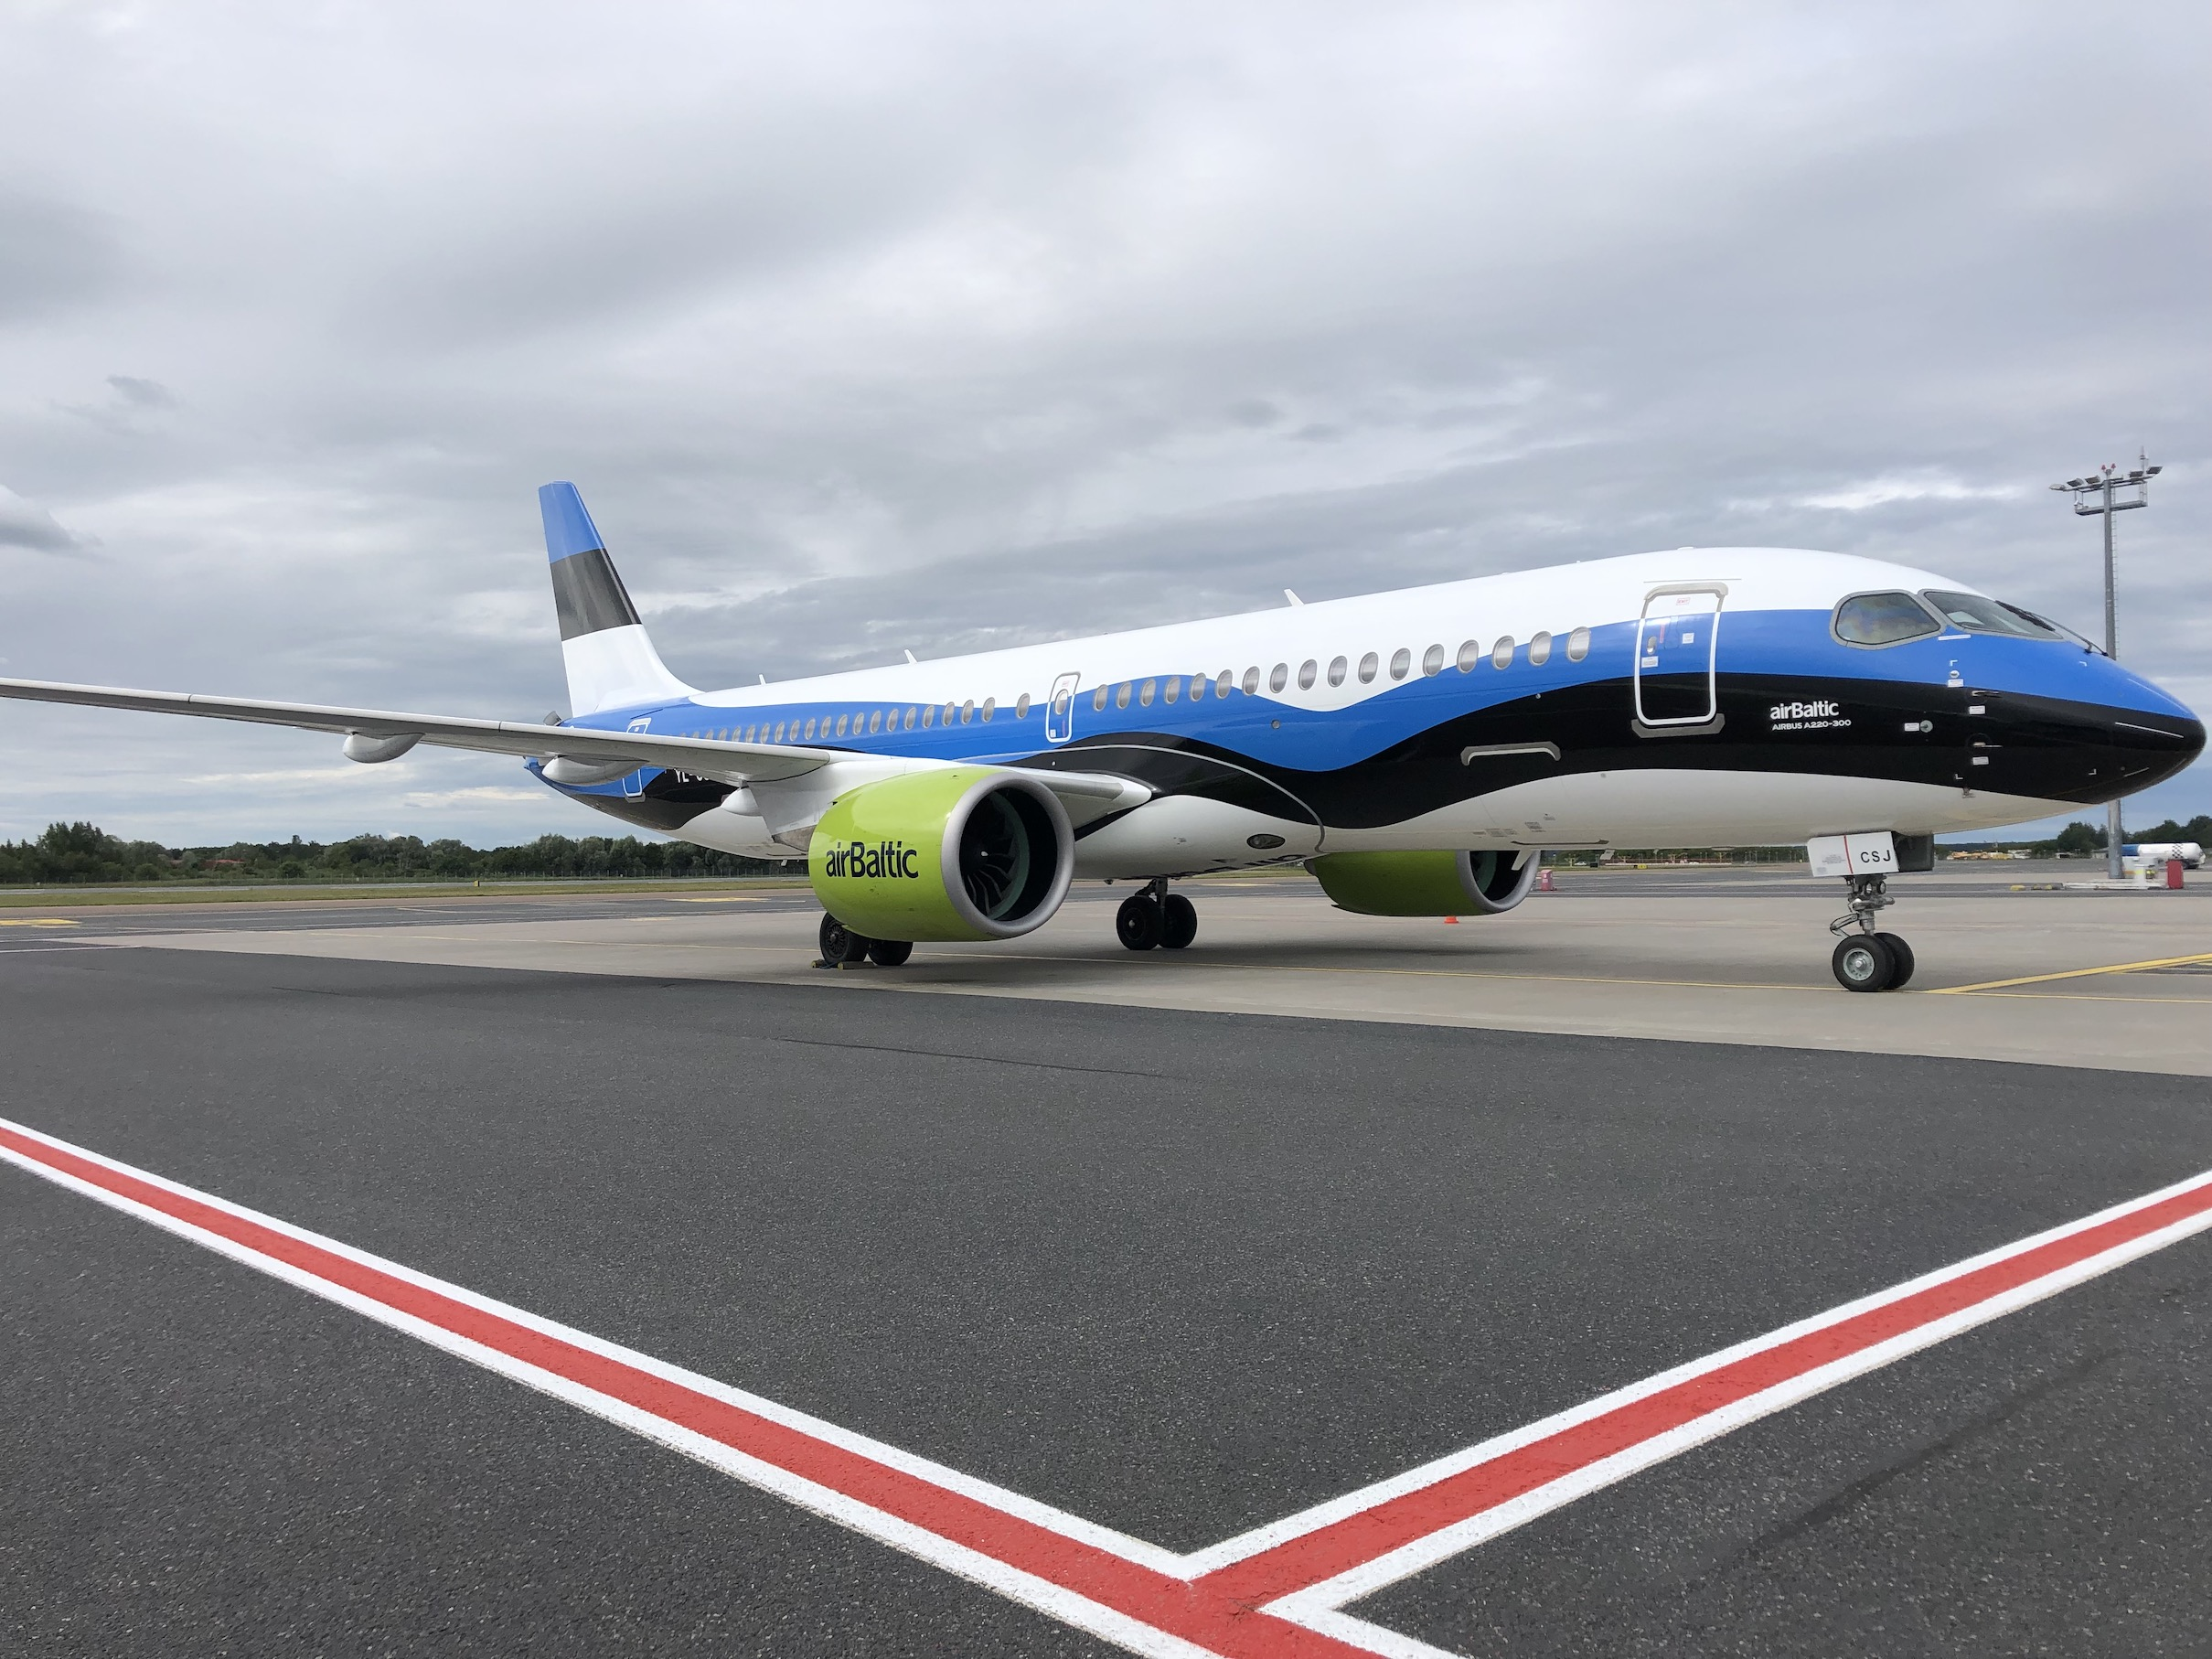 2019_06_29_airBaltic_A220_EE_Livery_3.jpeg